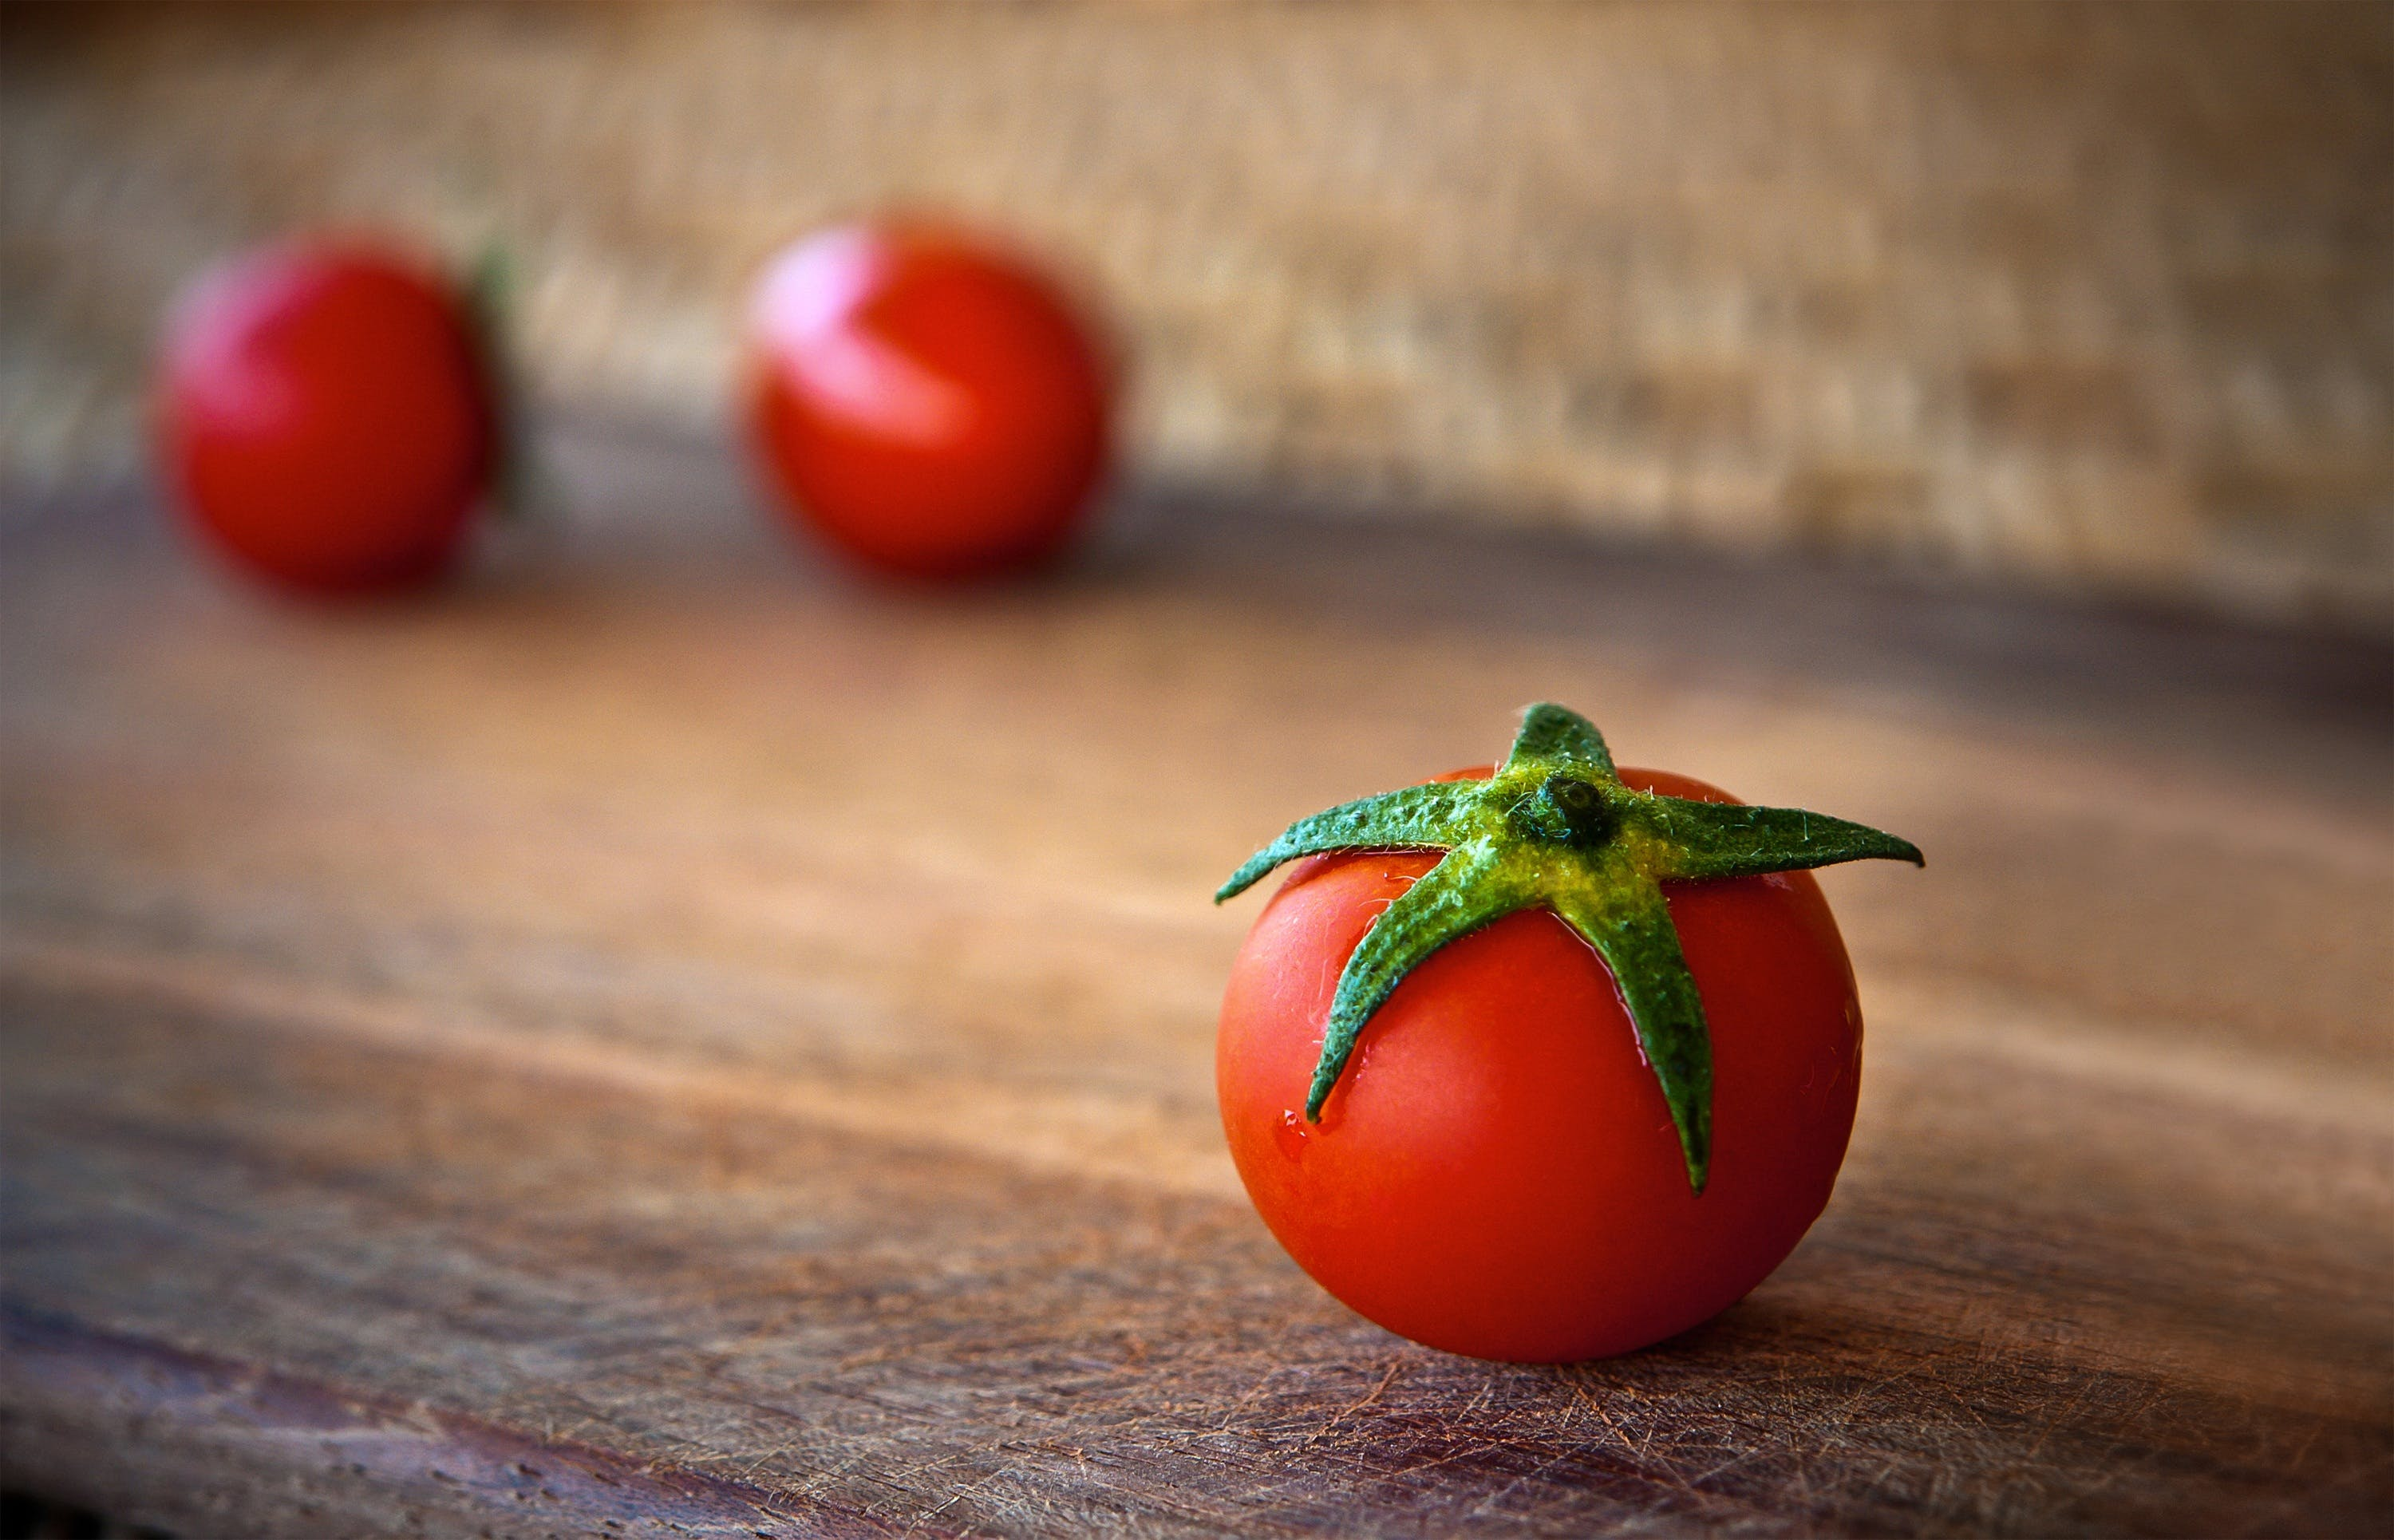 Close-up of Tomatoes on Wooden Table